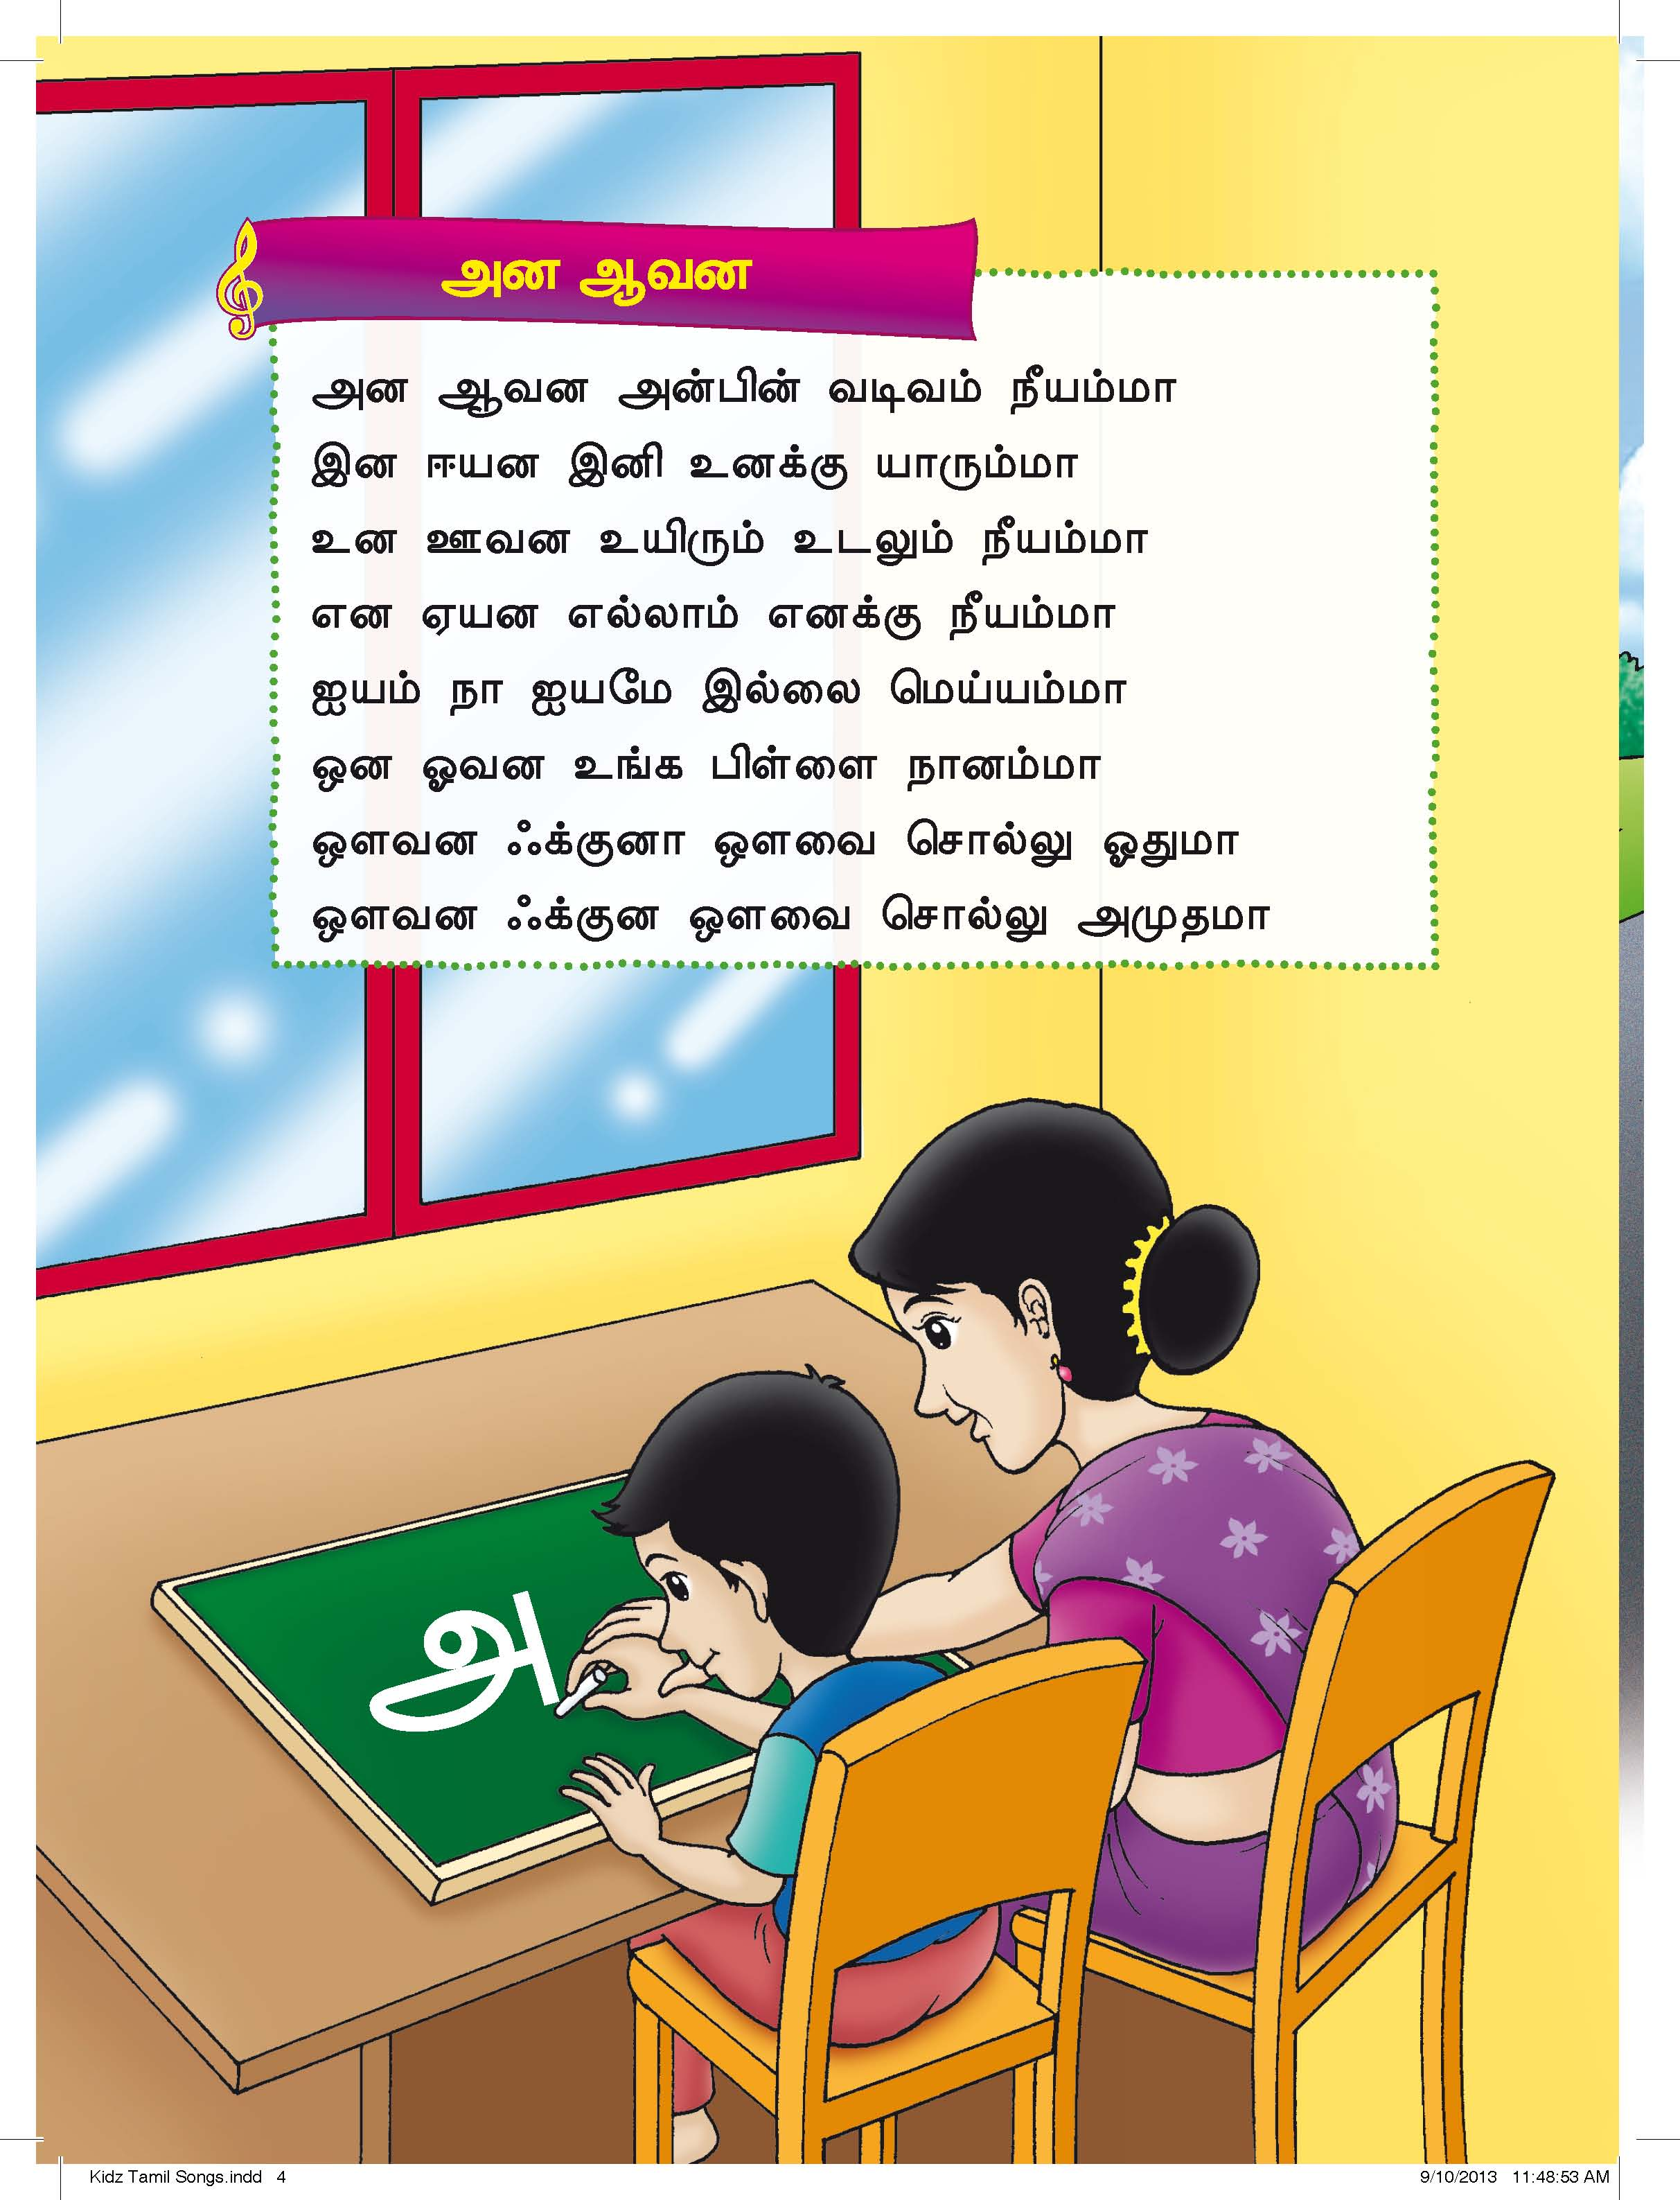 Tamil Nursery Rhymes - Read Resources : Buy School Books ...